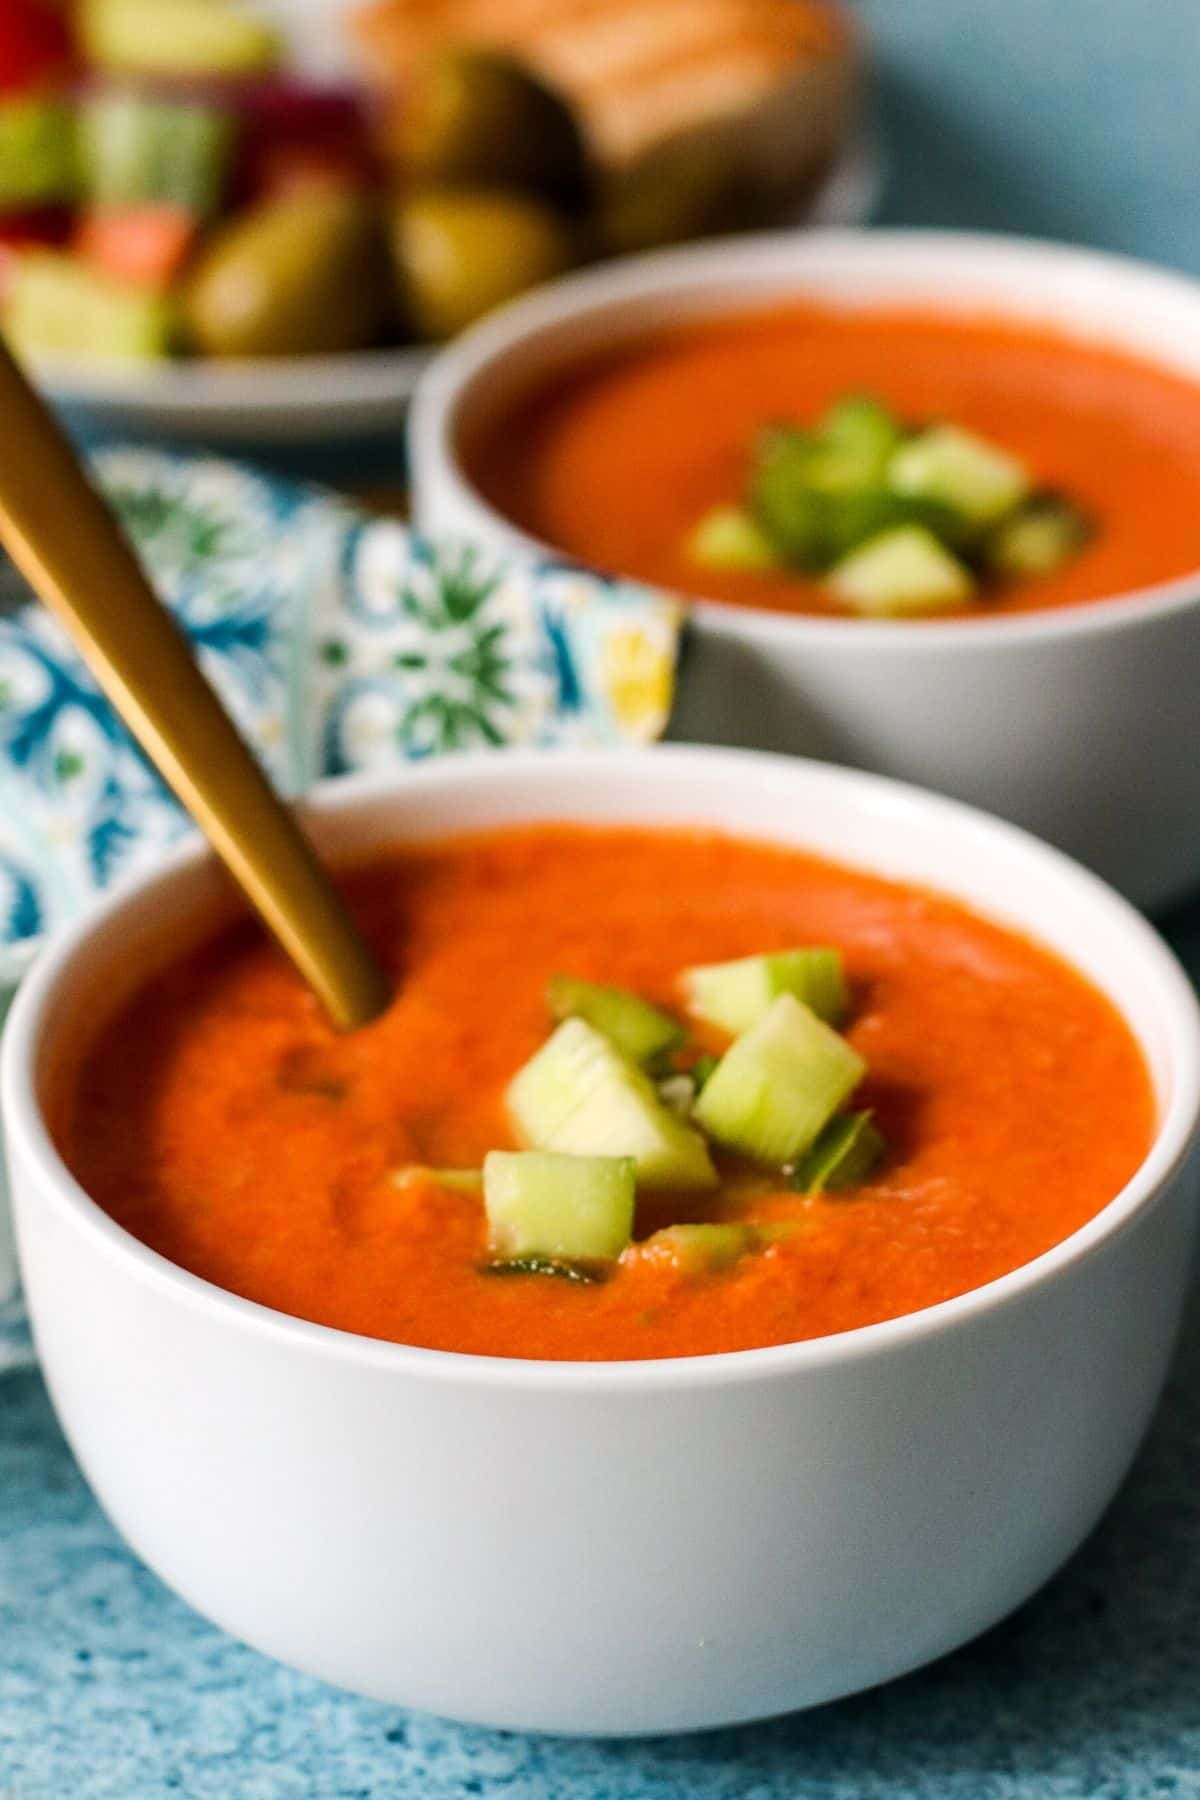 Bowls of gazpacho garnished with cubes of cucumber and green bell pepper